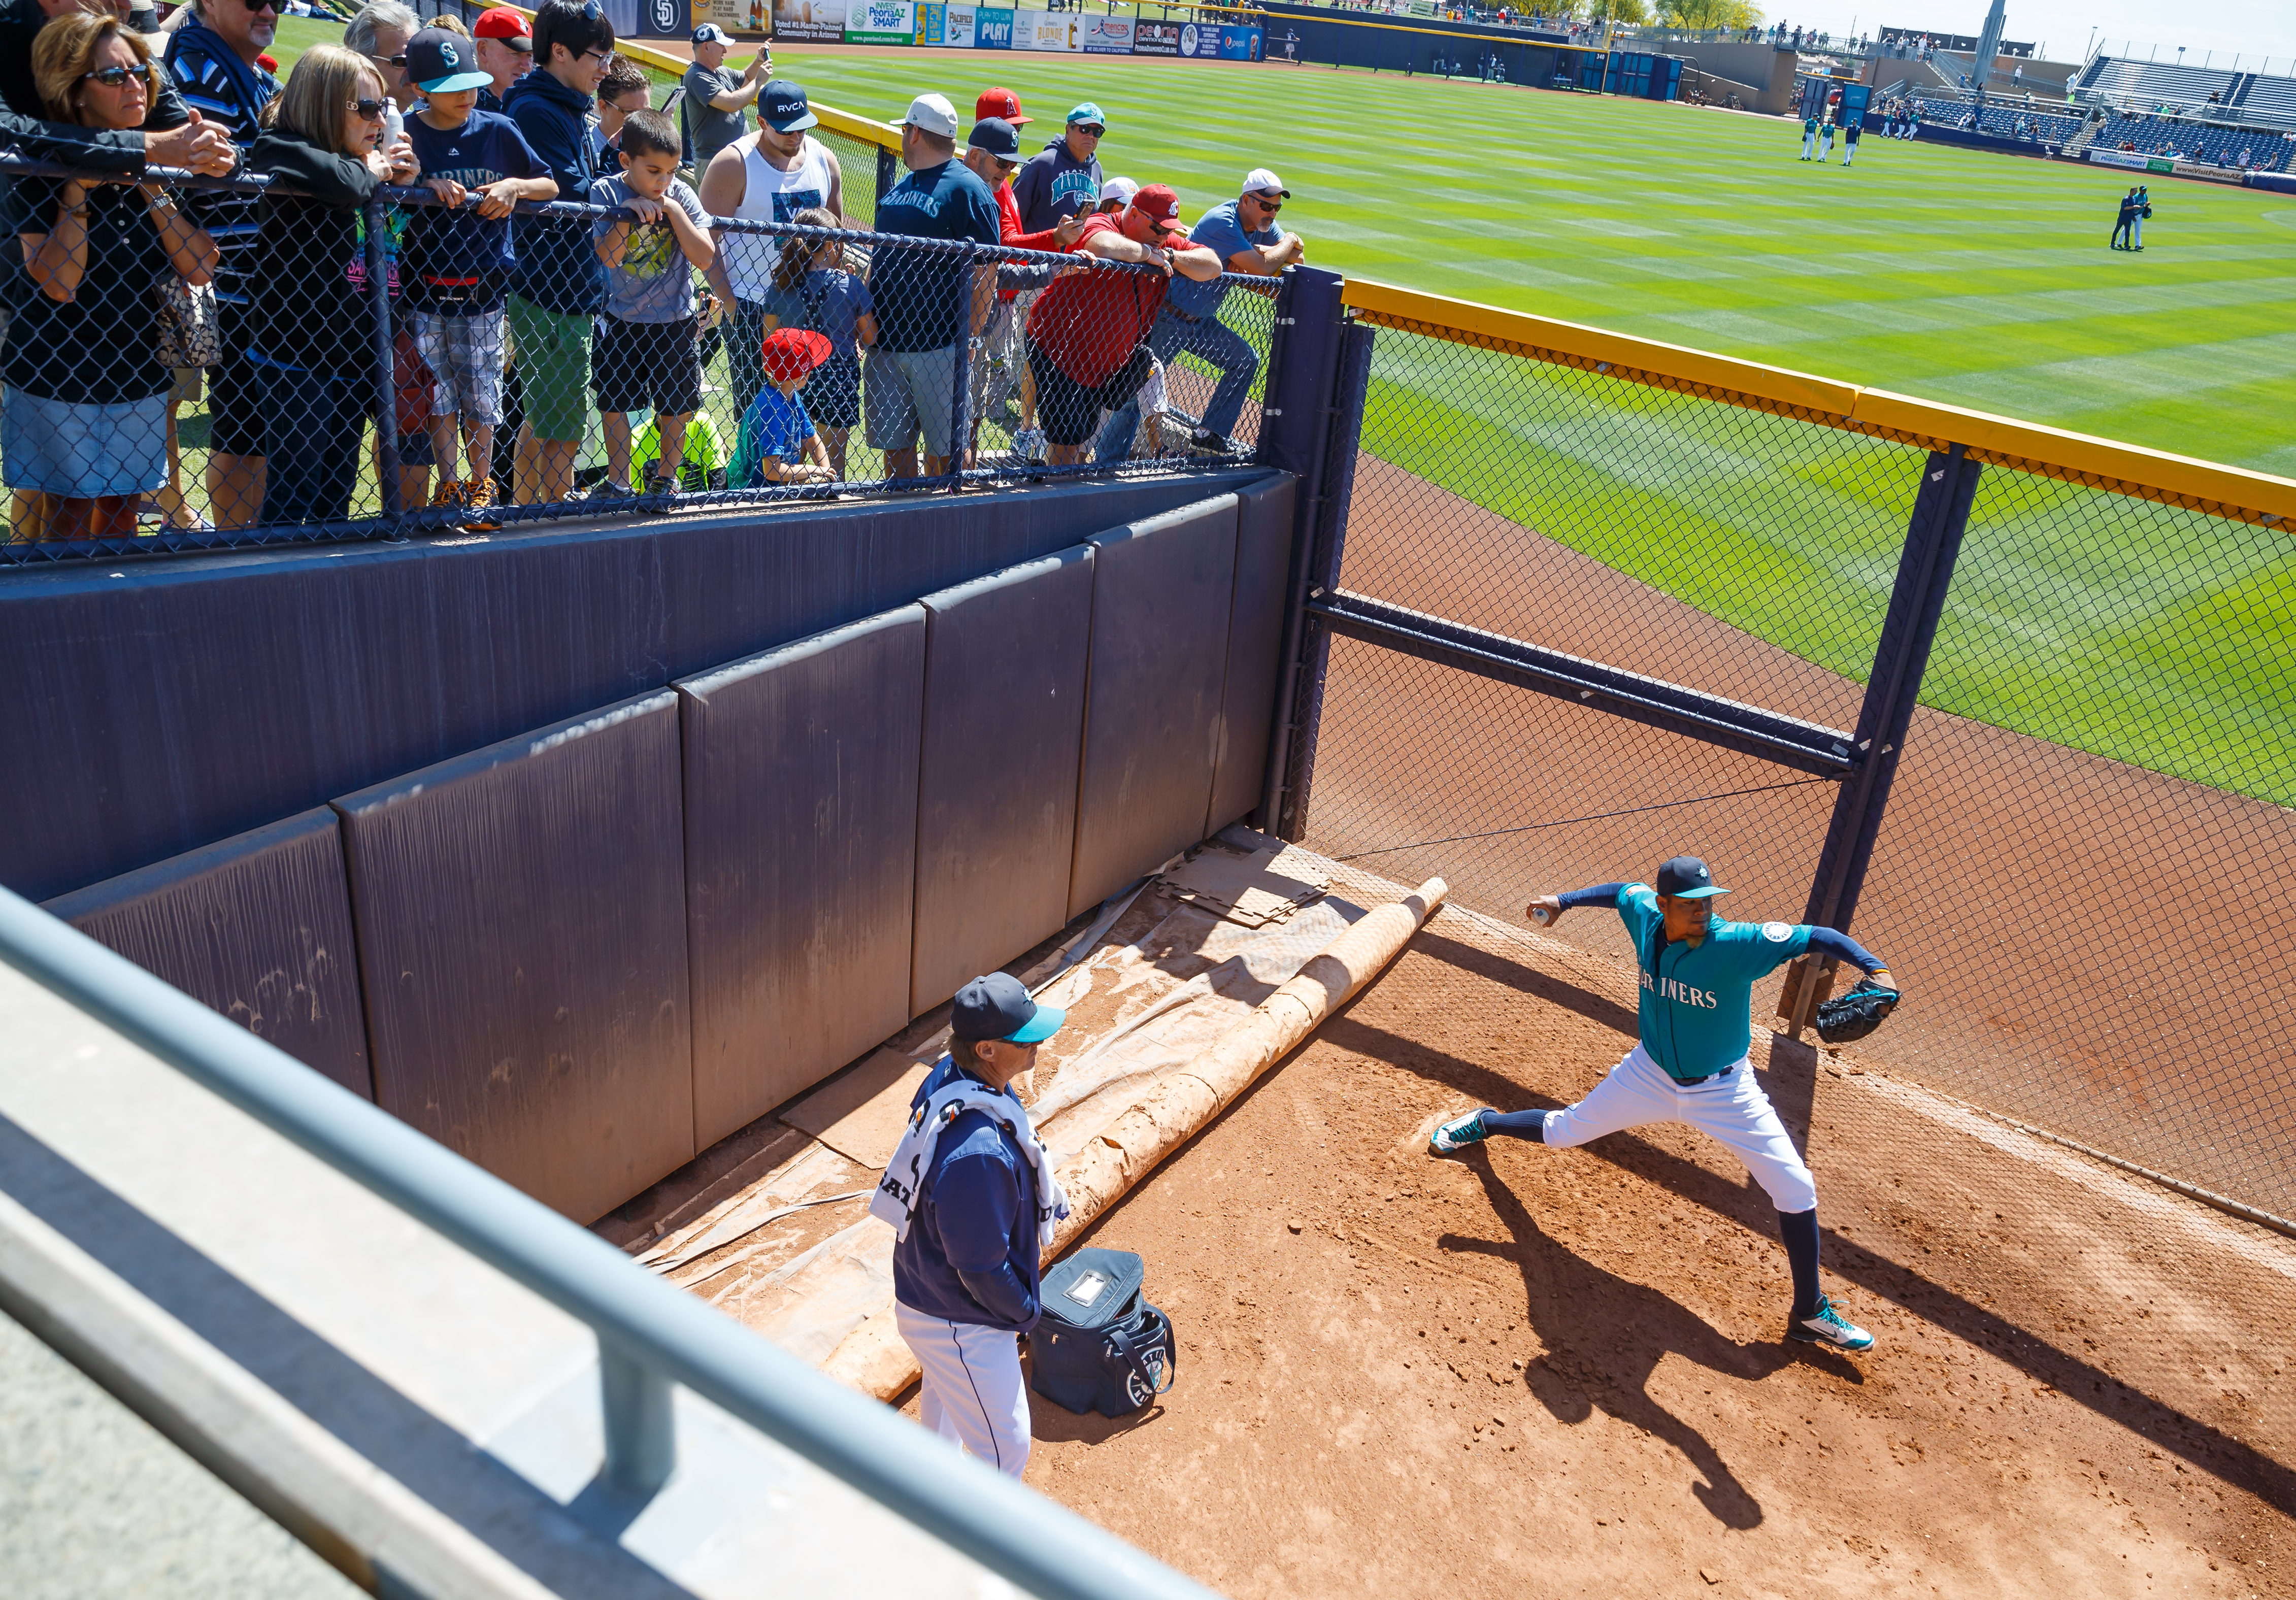 9429220-mlb-spring-training-san-diego-padres-at-seattle-mariners